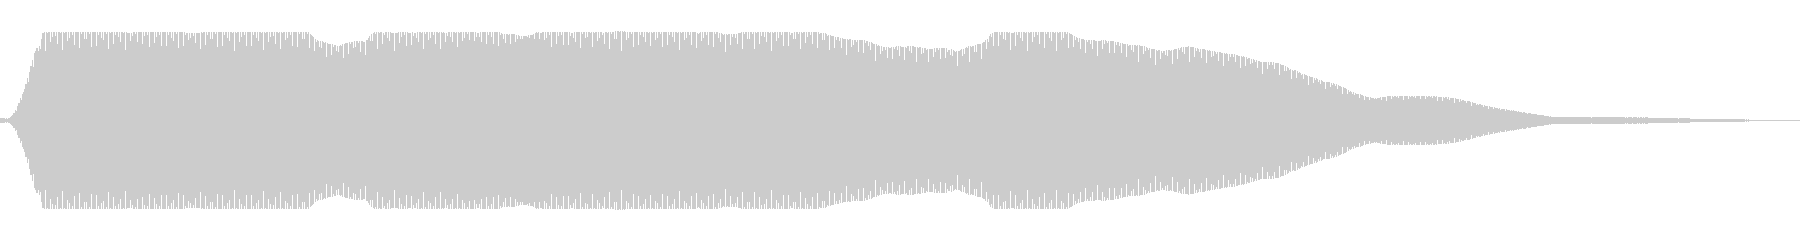 Poor (Sound with a sense of transparency in the medium to low range)'s unreproduced waveform